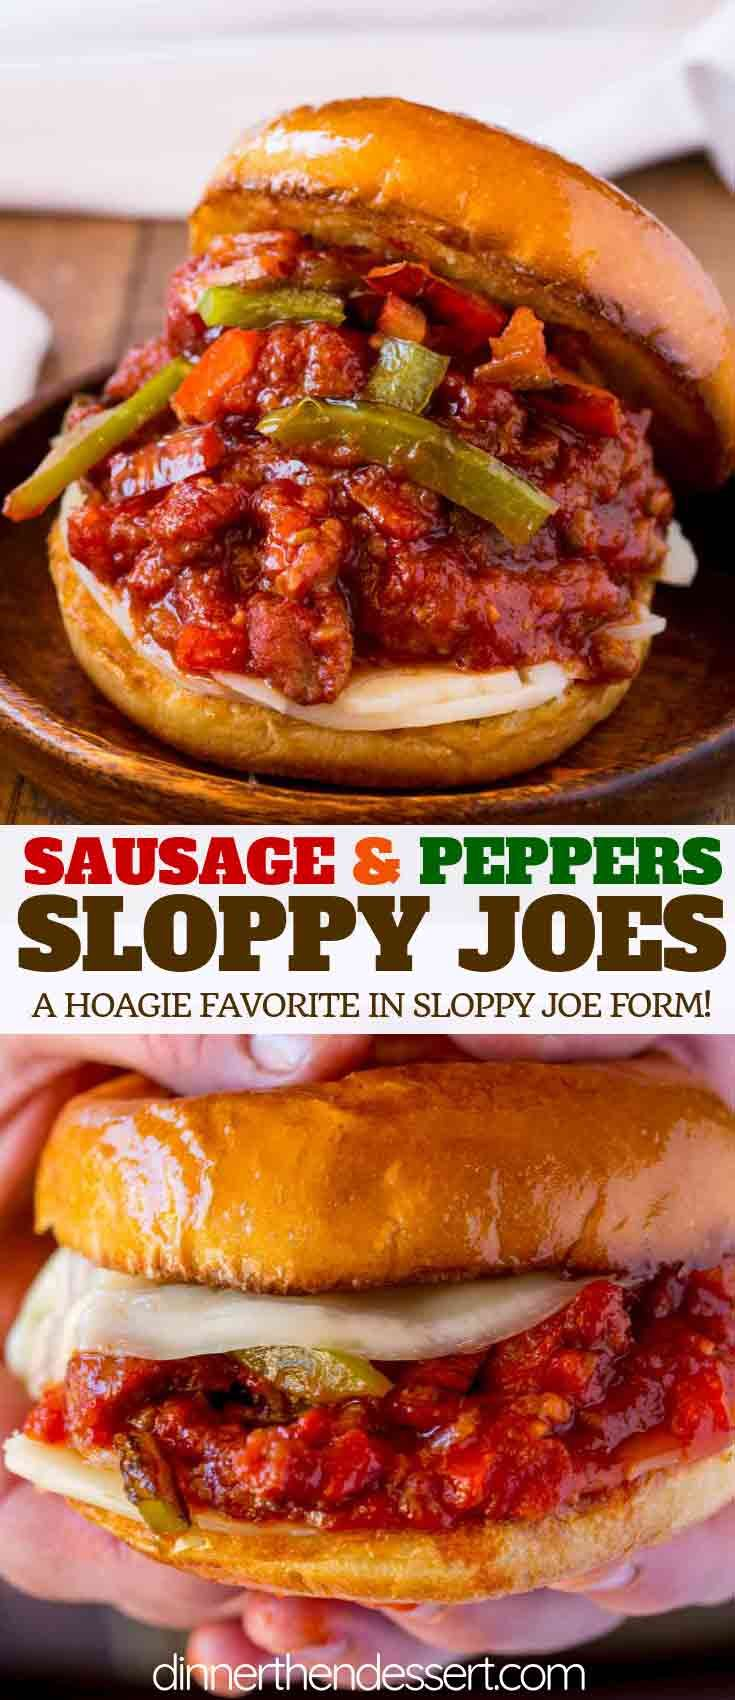 Sausage and Peppers Sloppy Joes made with bell peppers, ground pork served on a toasted brioche roll topped with Provolone cheese and ready in 20 minutes! | #sloppyjoes #sloppyjoe #pork #groundpork #sandwich #lunch #dinnerthendessert #porksausages